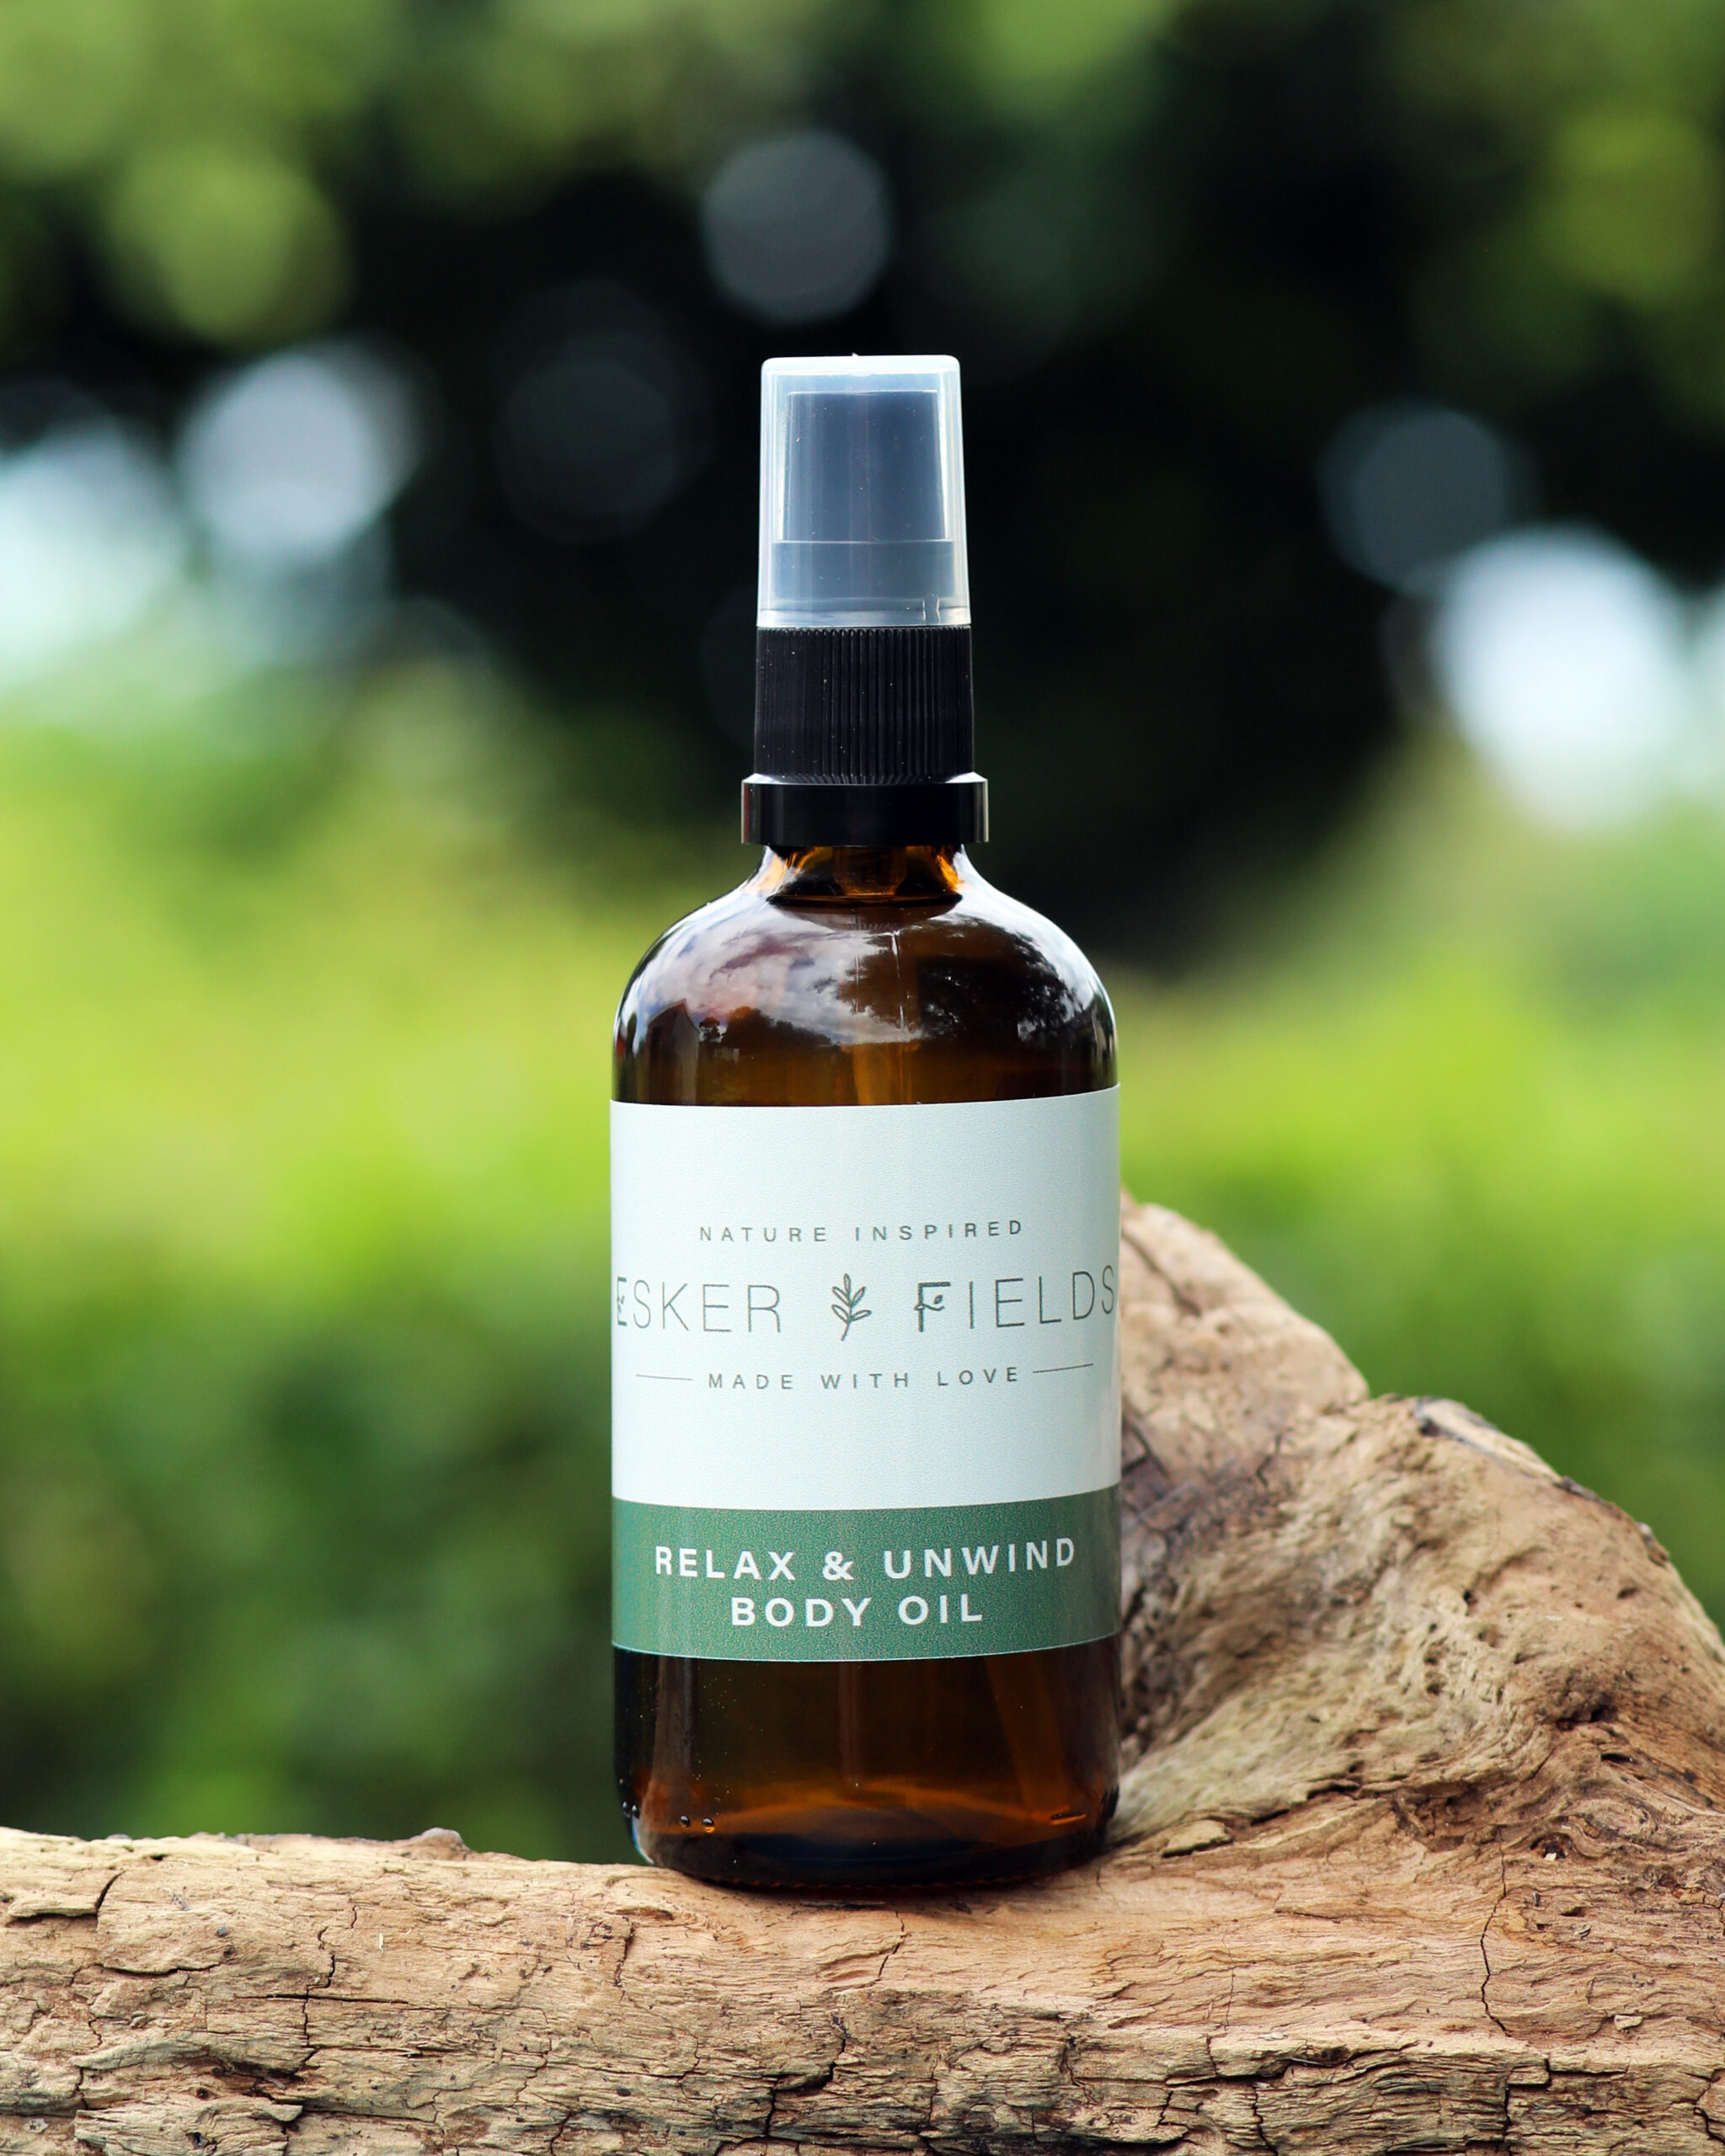 Esker Fields Relax & Unwind body oil